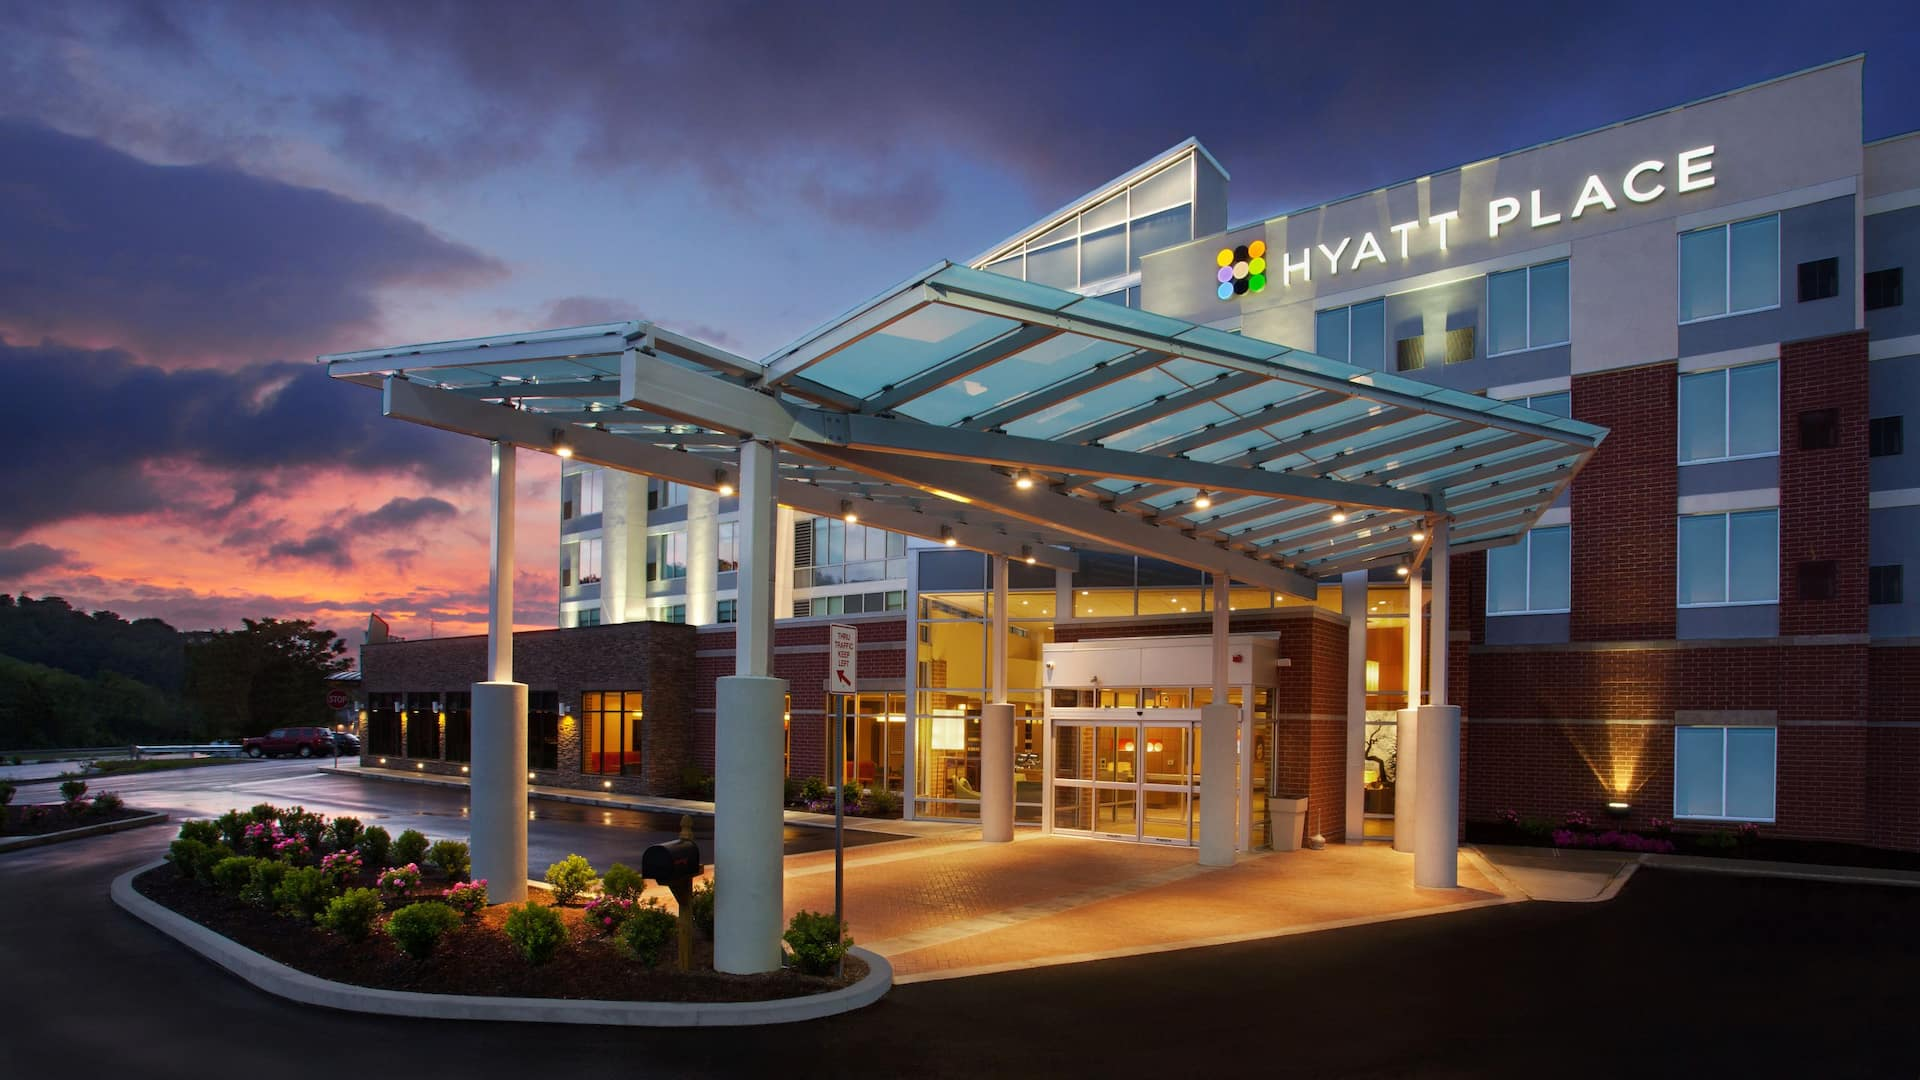 Hyatt Place Pittsburgh Night exterior